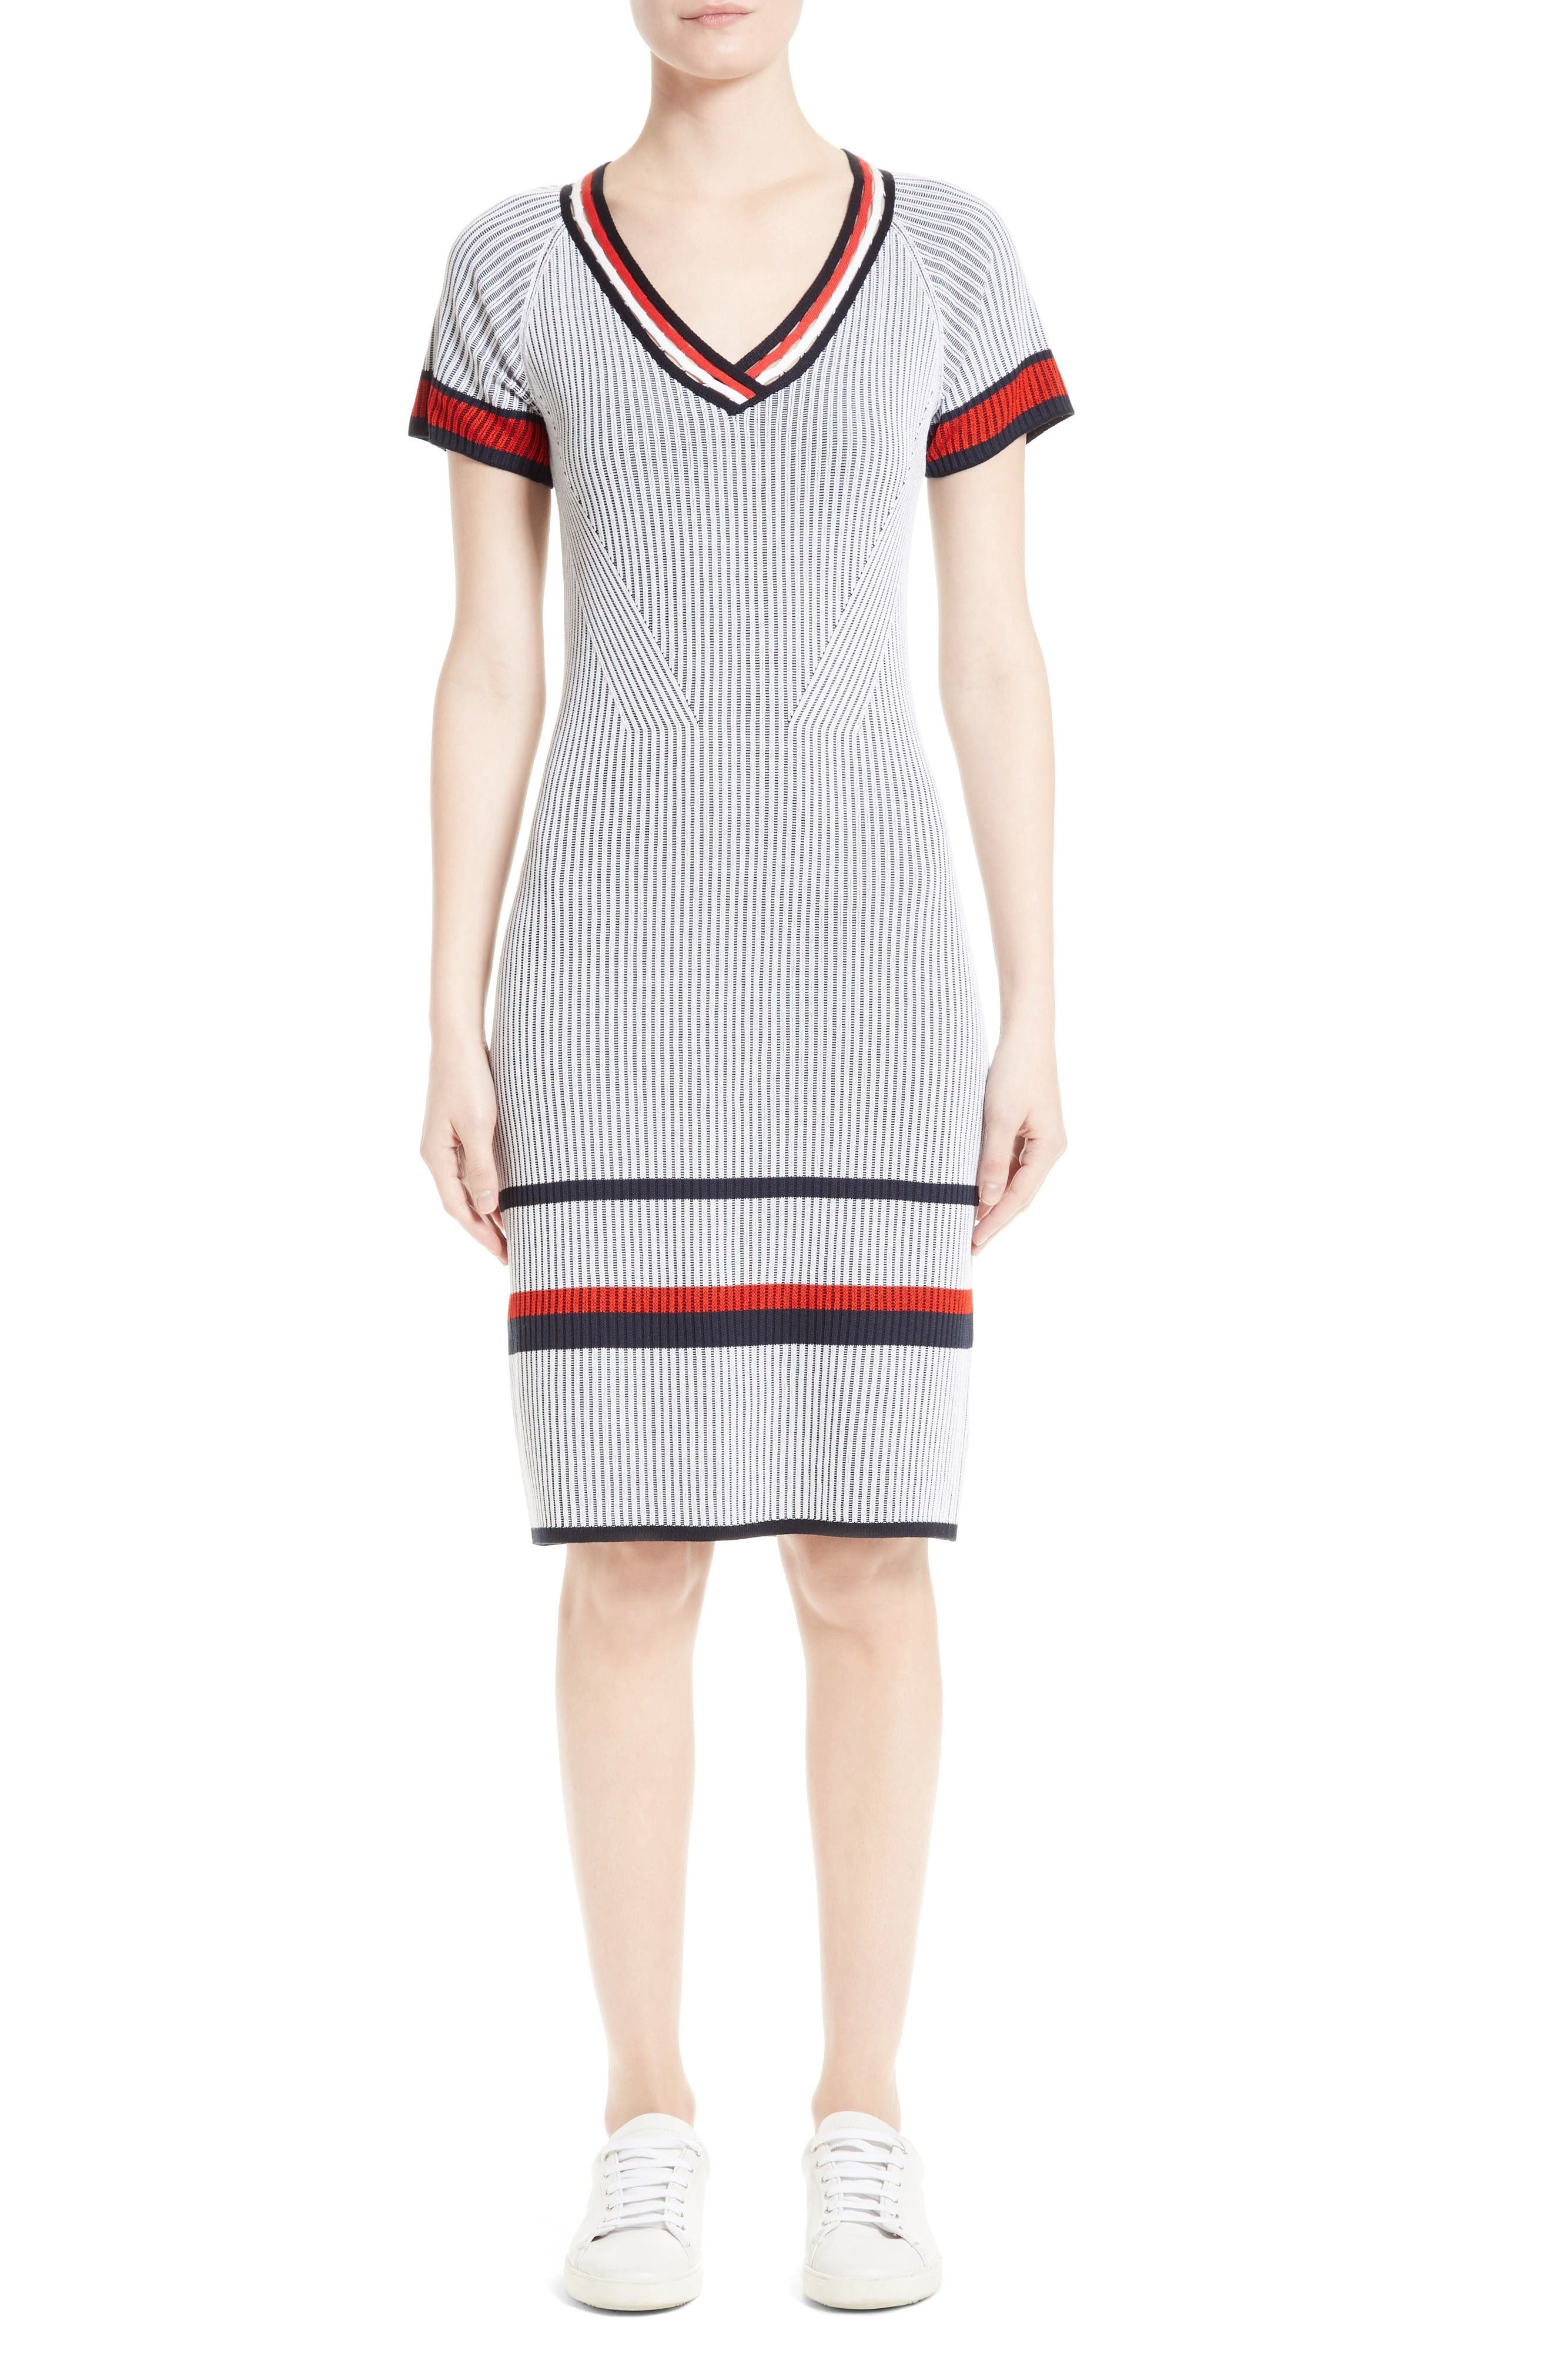 Alternate Image 1 Selected - St. John Collection Two-Tone Rib Knit Dress